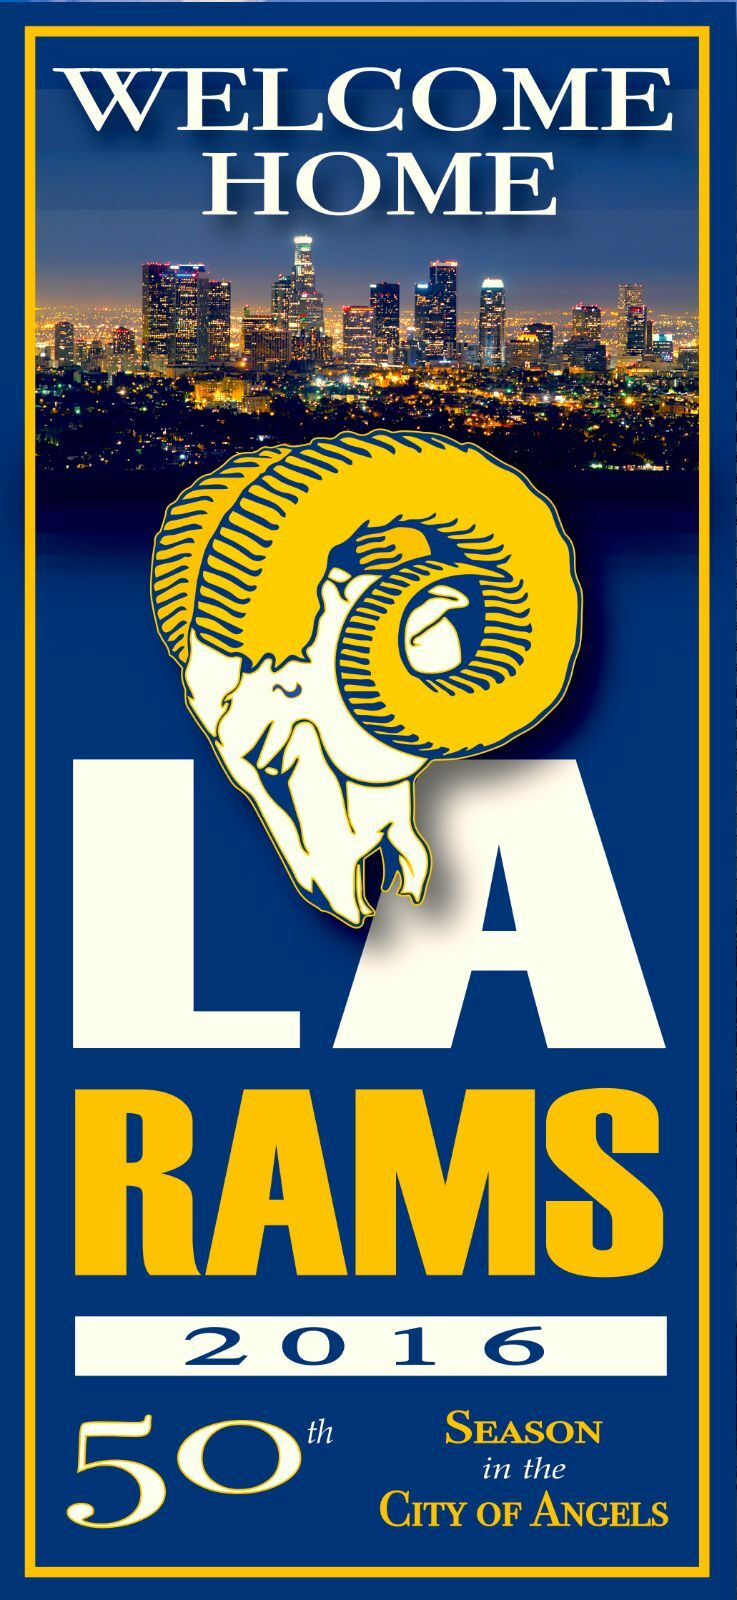 La Rams Welcome Home 2 Los Angeles Vinyl Adhesive Wall Decor Poster ...